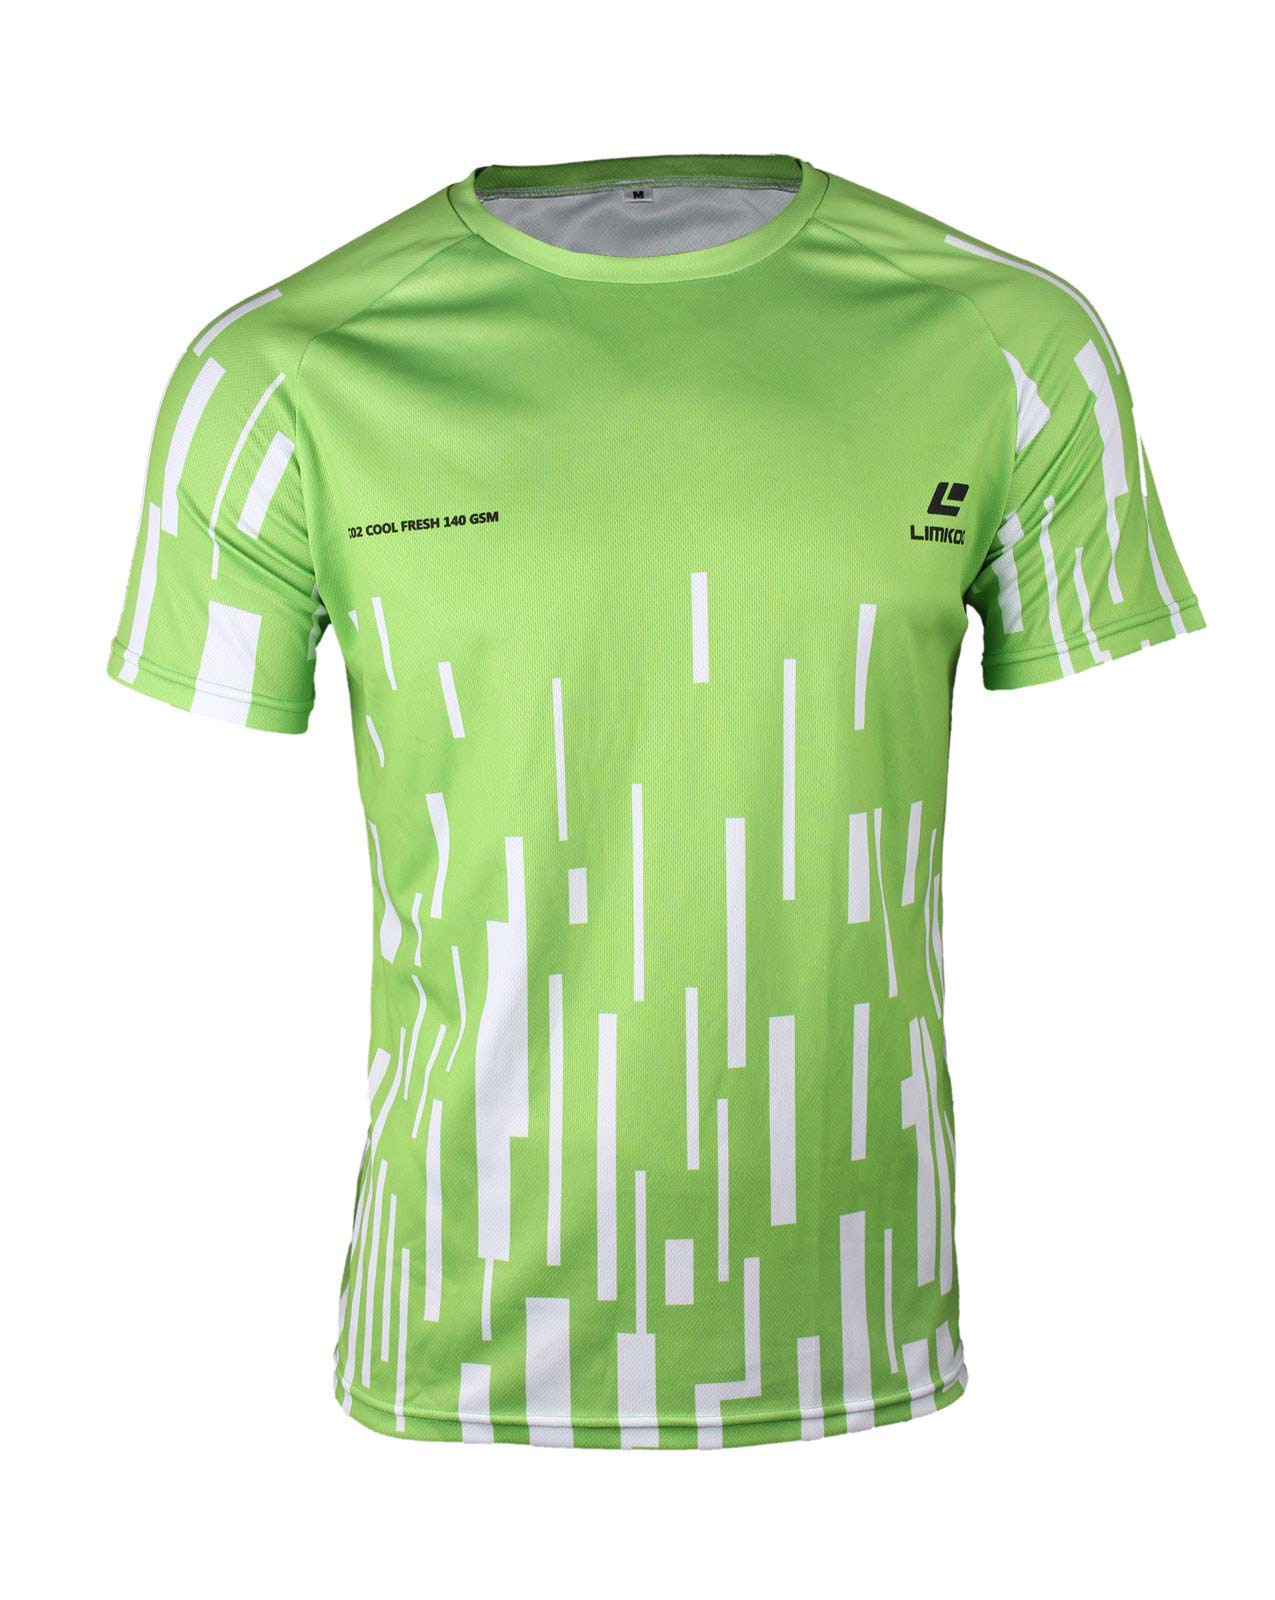 COOL FRESH Short Sleeve Running Shirt